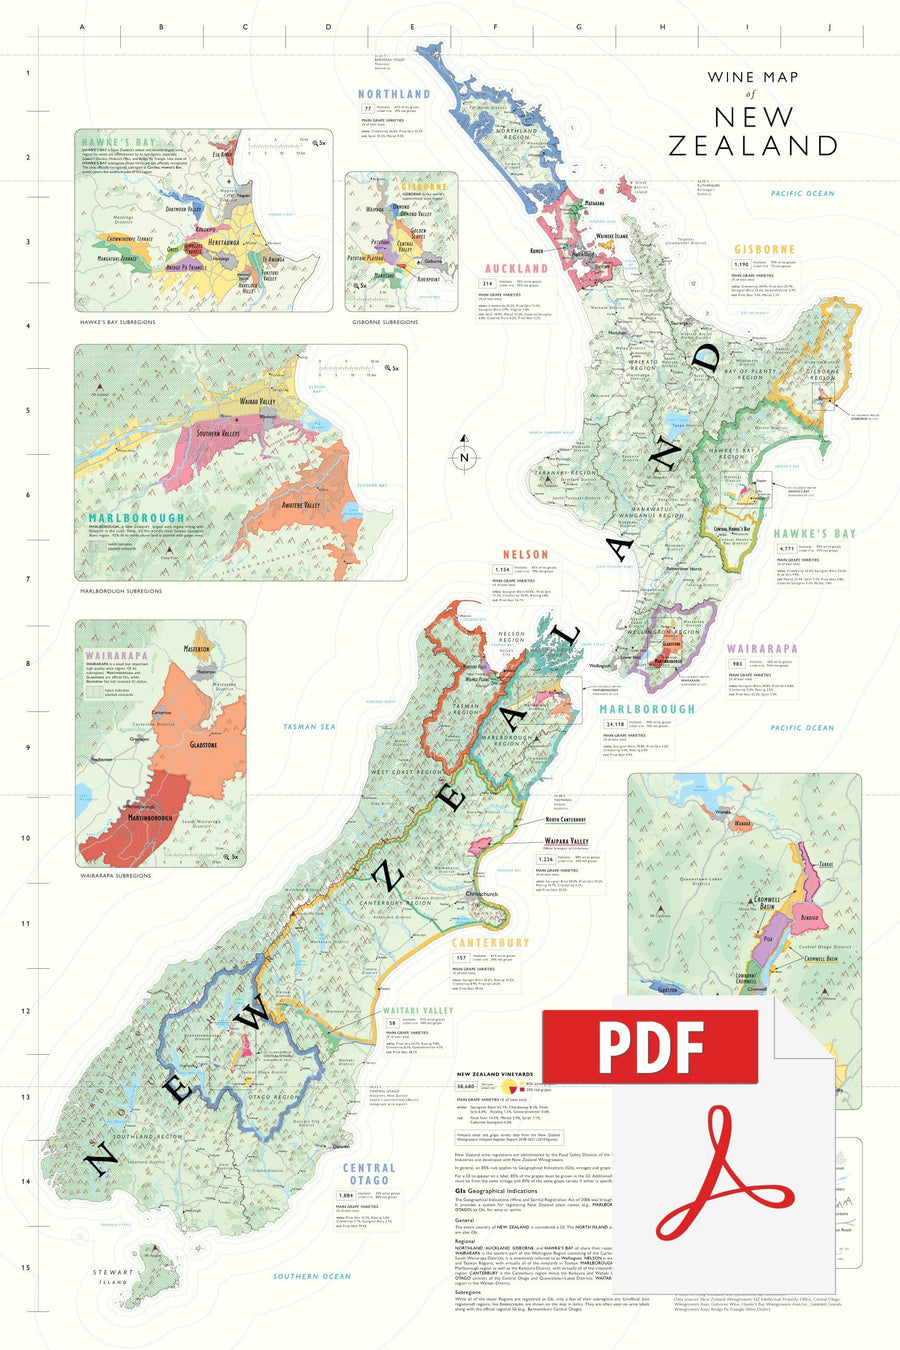 Wine Map of New Zealand - Digital Edition